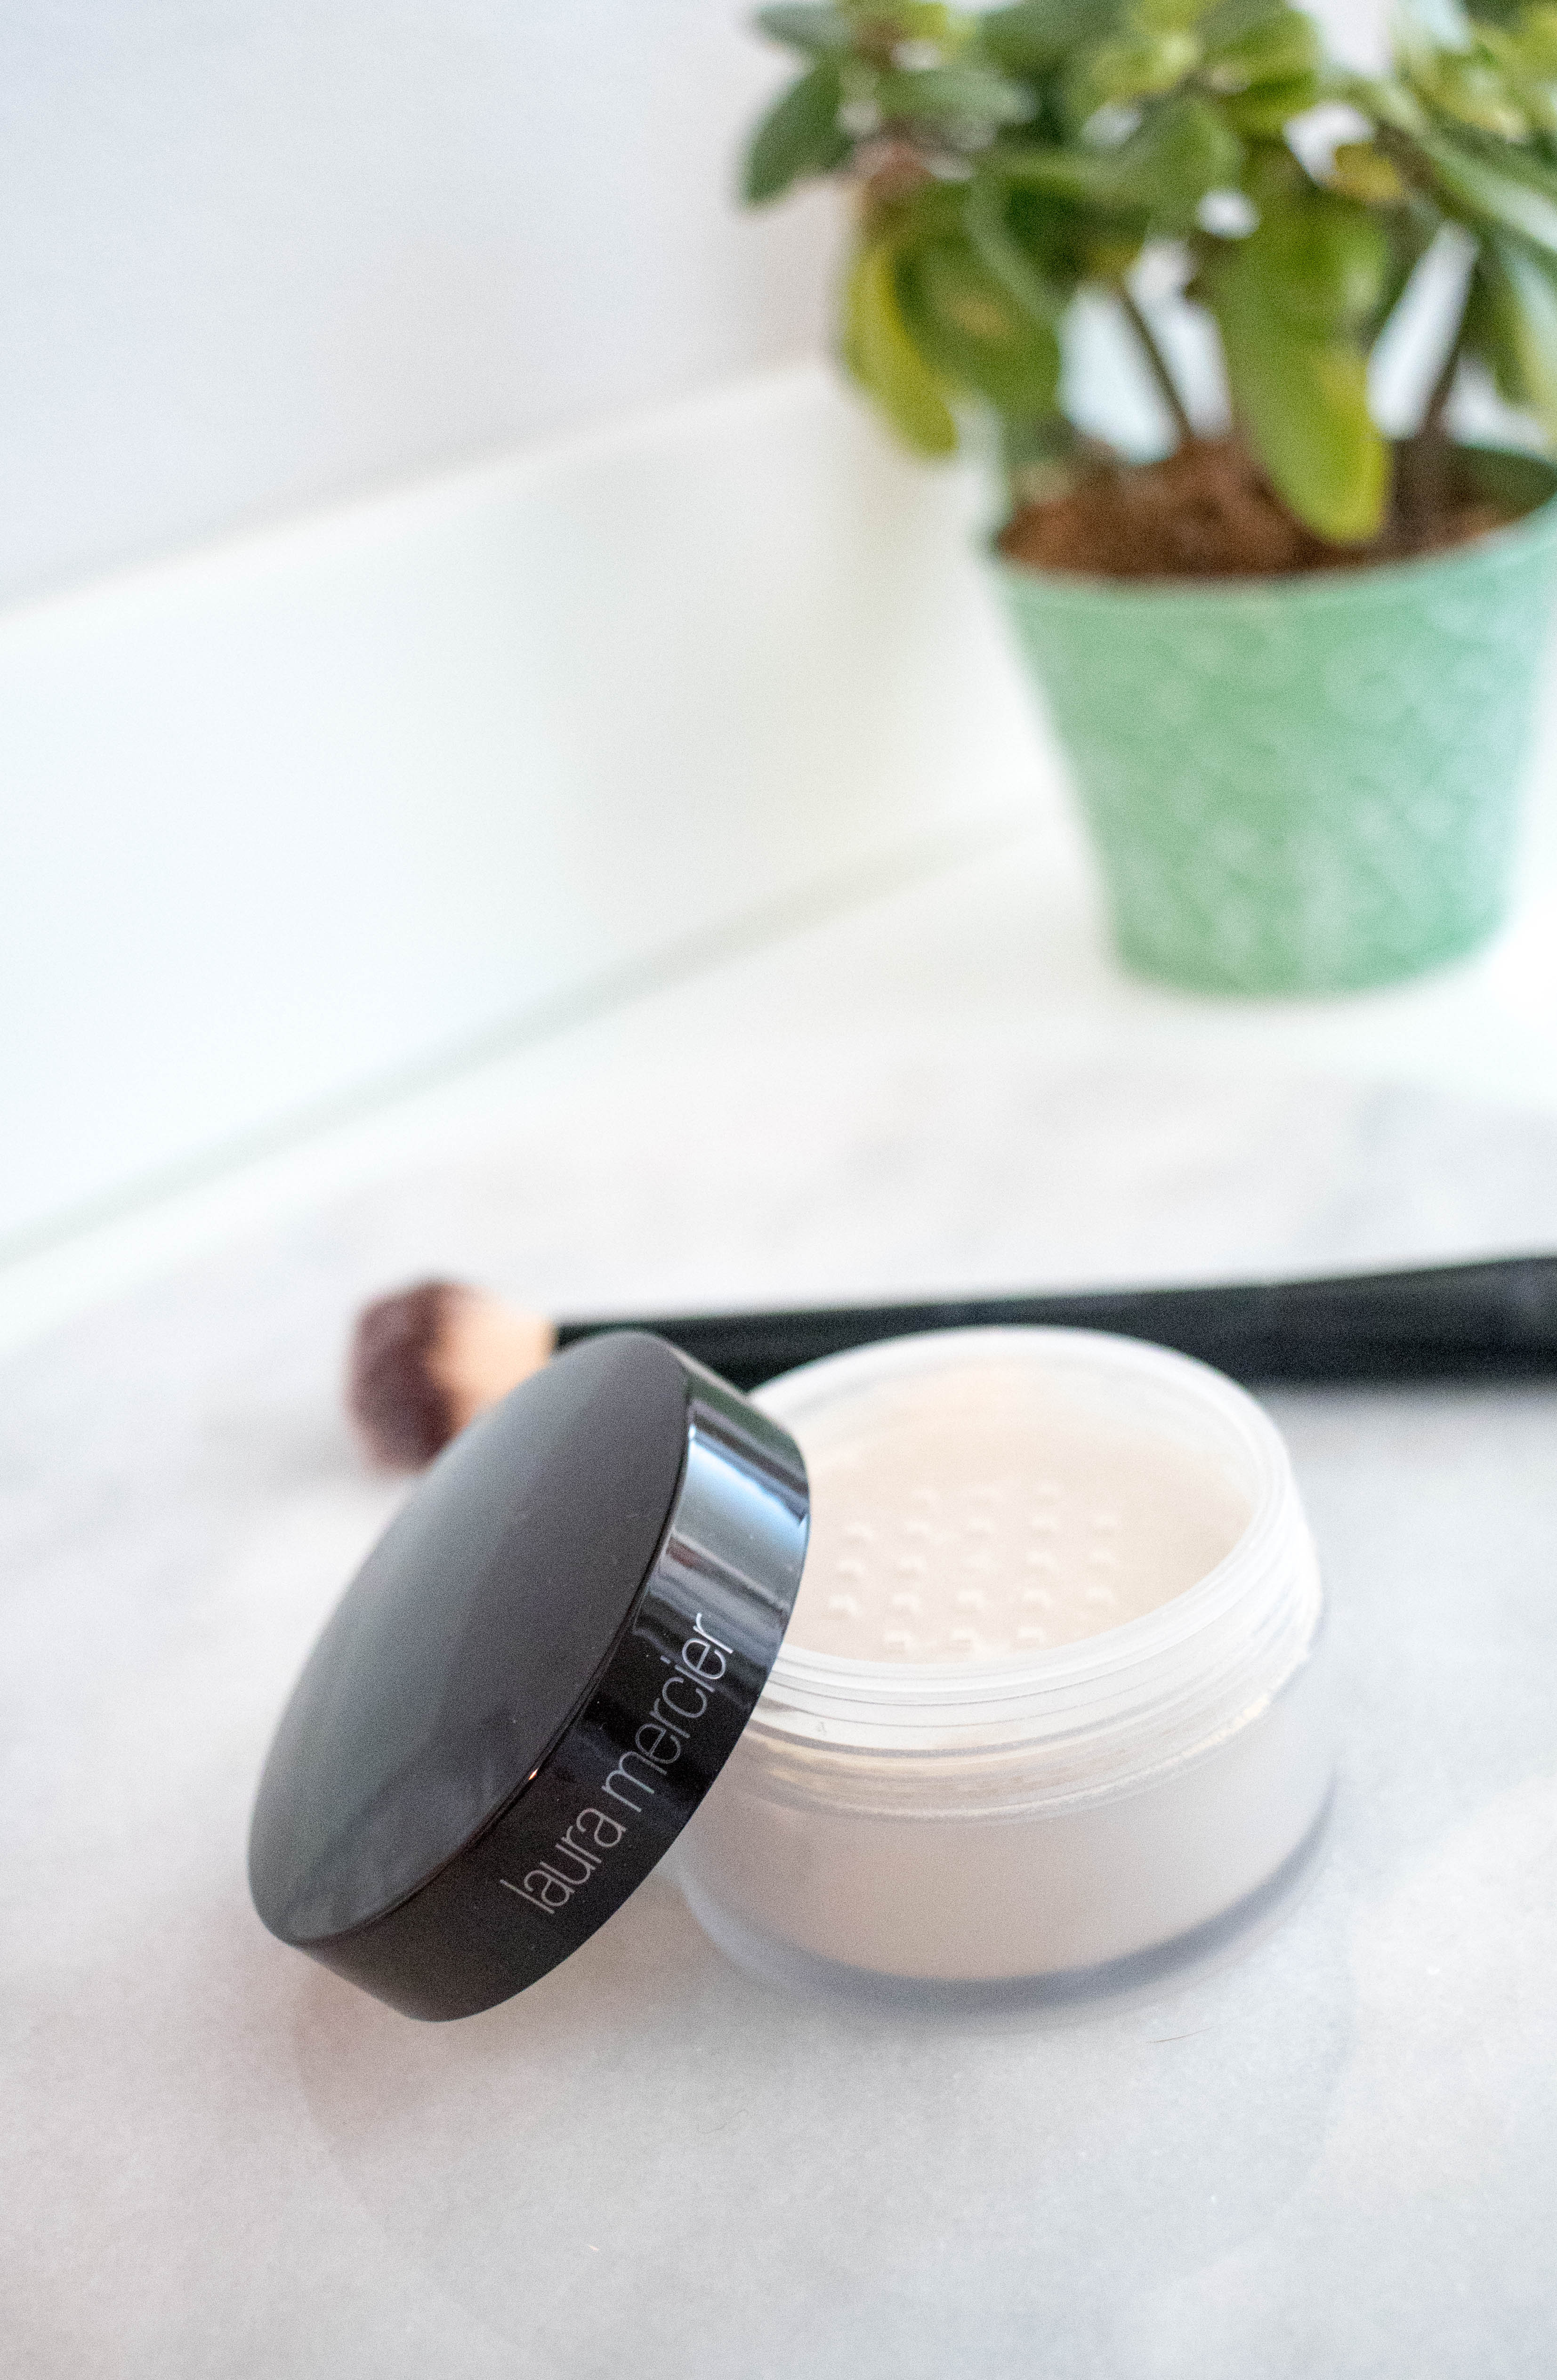 Laura mercier loose setting powder review #makeupreview #makeup #settingpowder